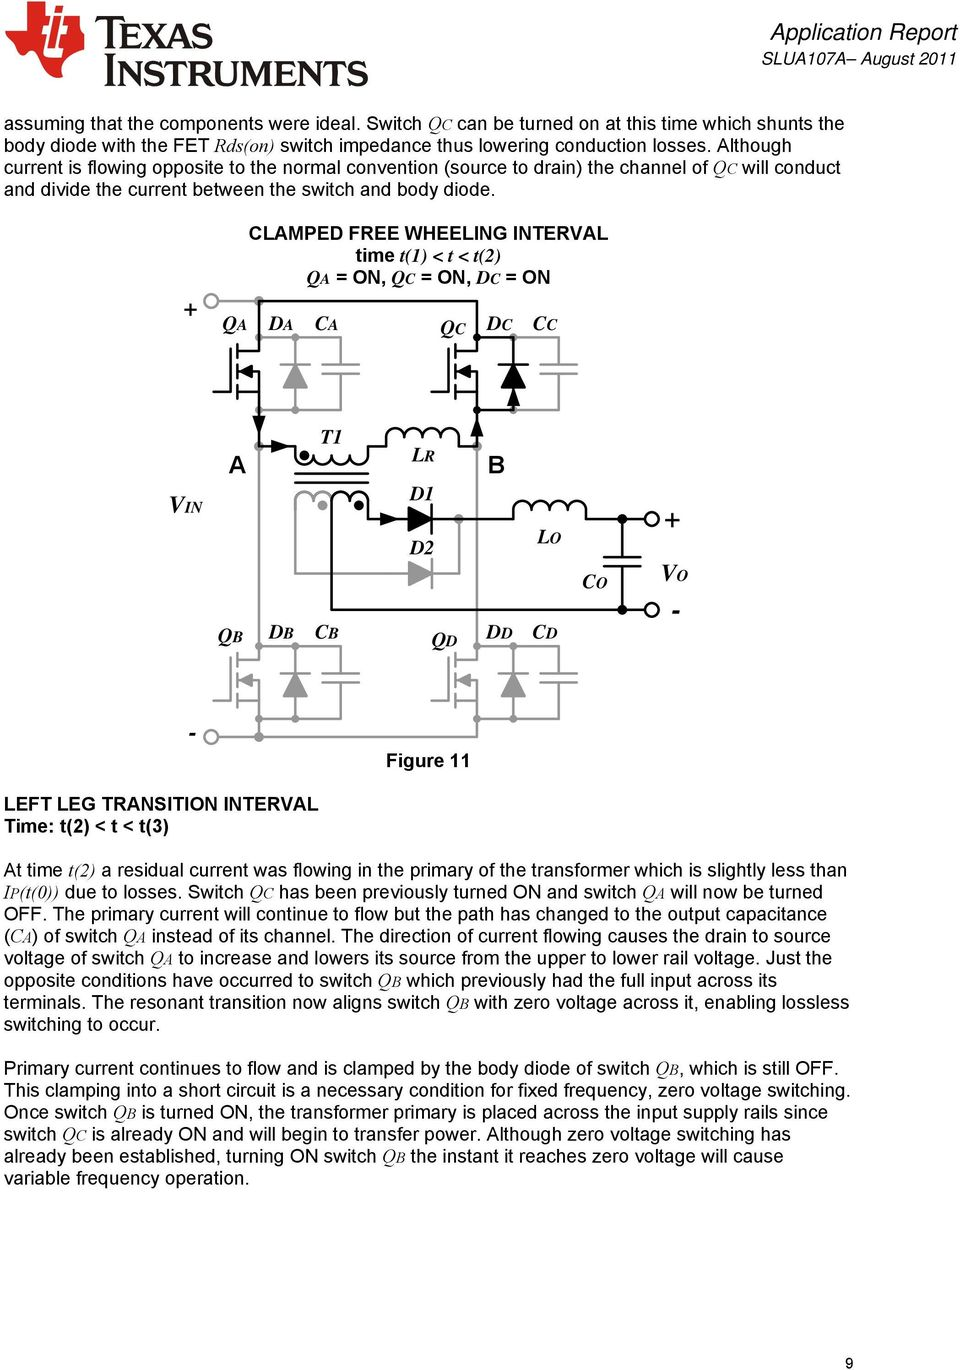 Phase Shifted Full Bridge Zero Voltage Transition Design Schematics Of Delabs Isolated Dual Power Supply From 5v Qa Clamped Fee Wheeling Inteval Time T